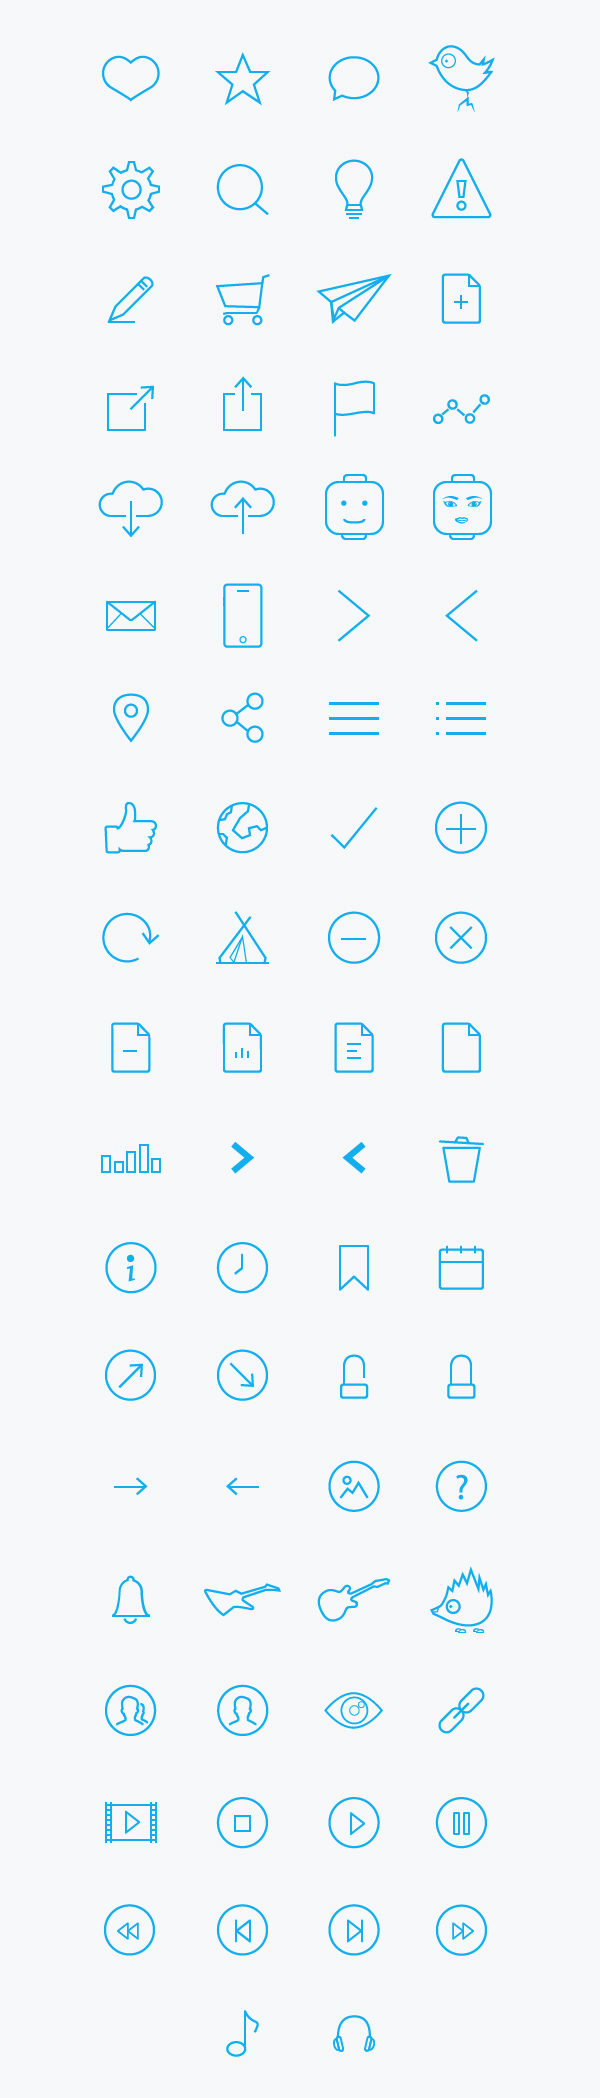 Bollhavet Free Outline Icons